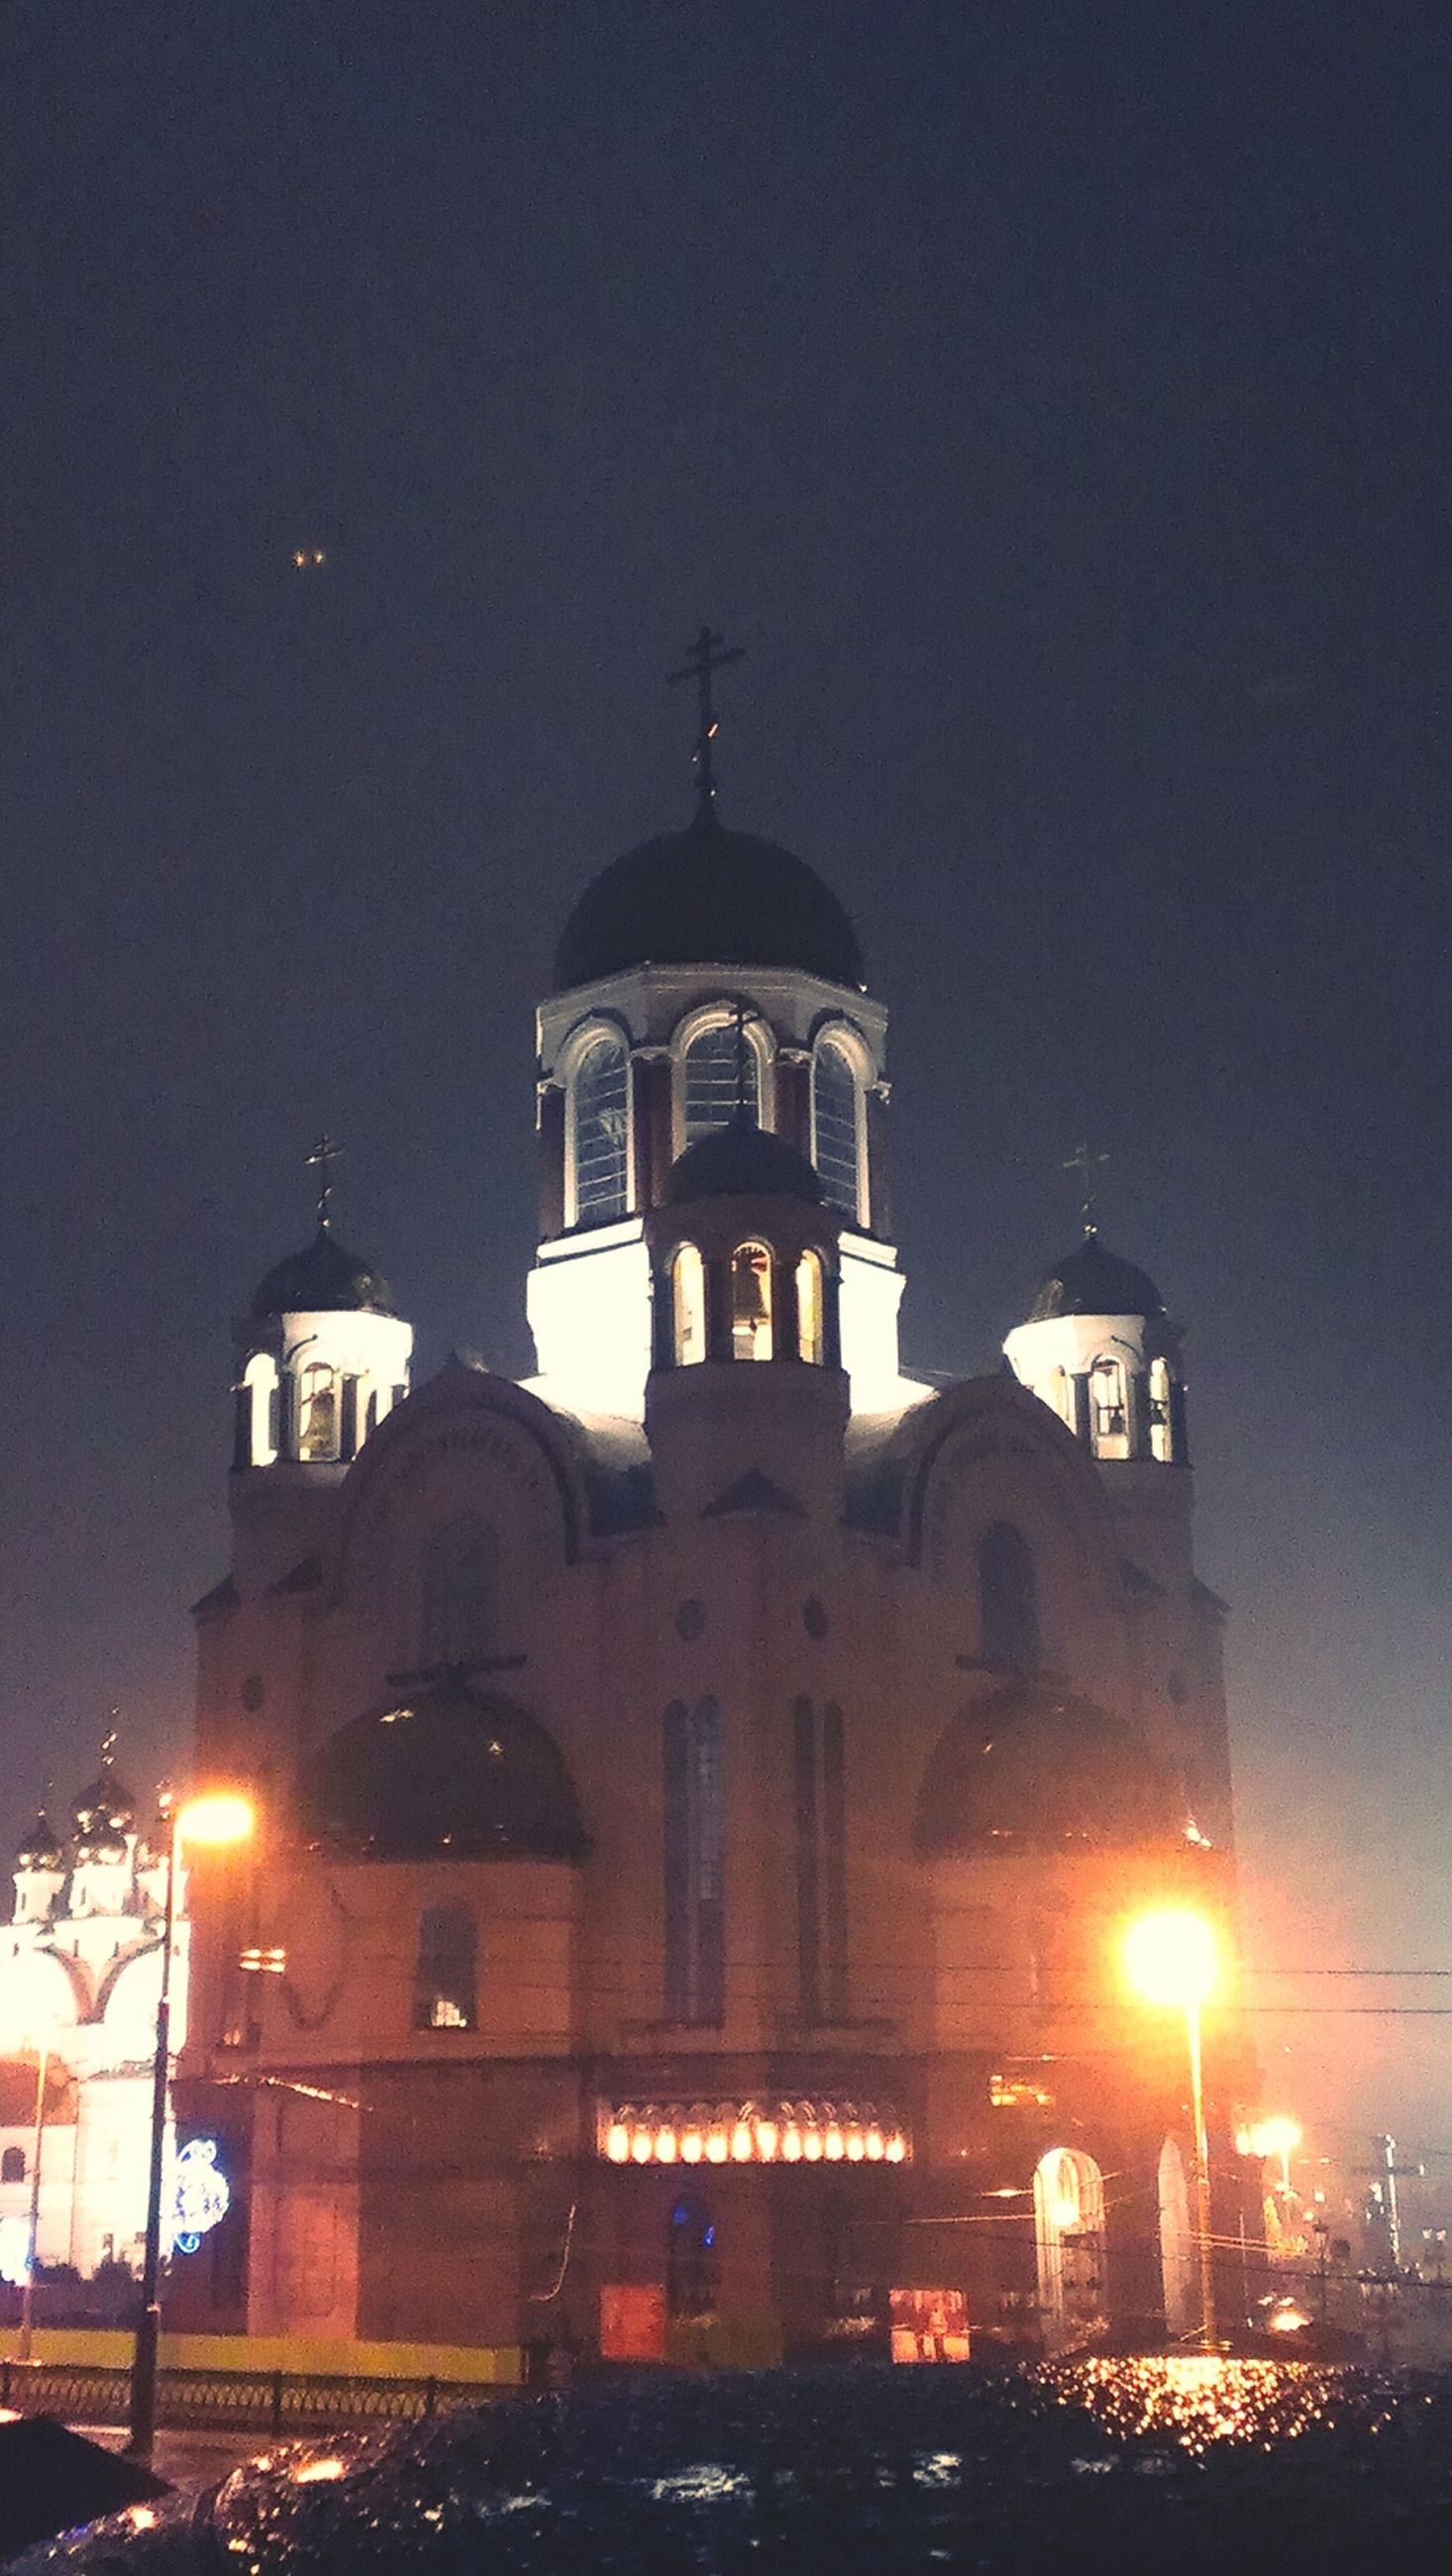 building exterior, architecture, built structure, illuminated, night, church, religion, street light, place of worship, low angle view, sky, dome, city, spirituality, lighting equipment, street, outdoors, building